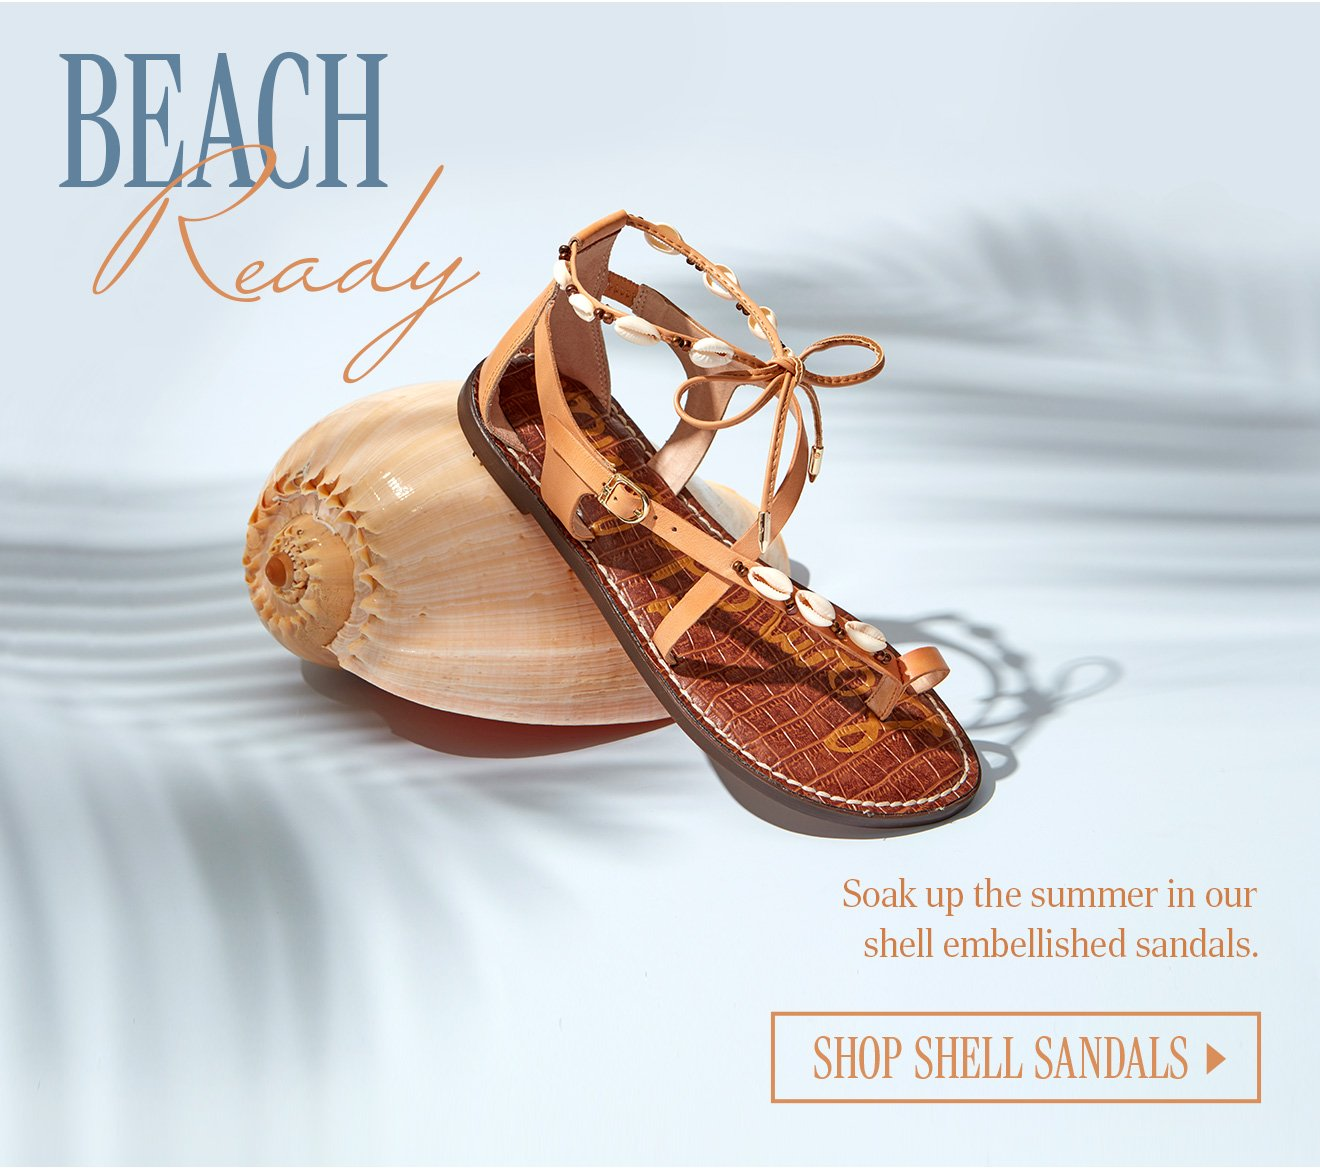 BEACH READY. Soak up the summer in our shell embellished sandals. SHOP SHELL SANDALS.